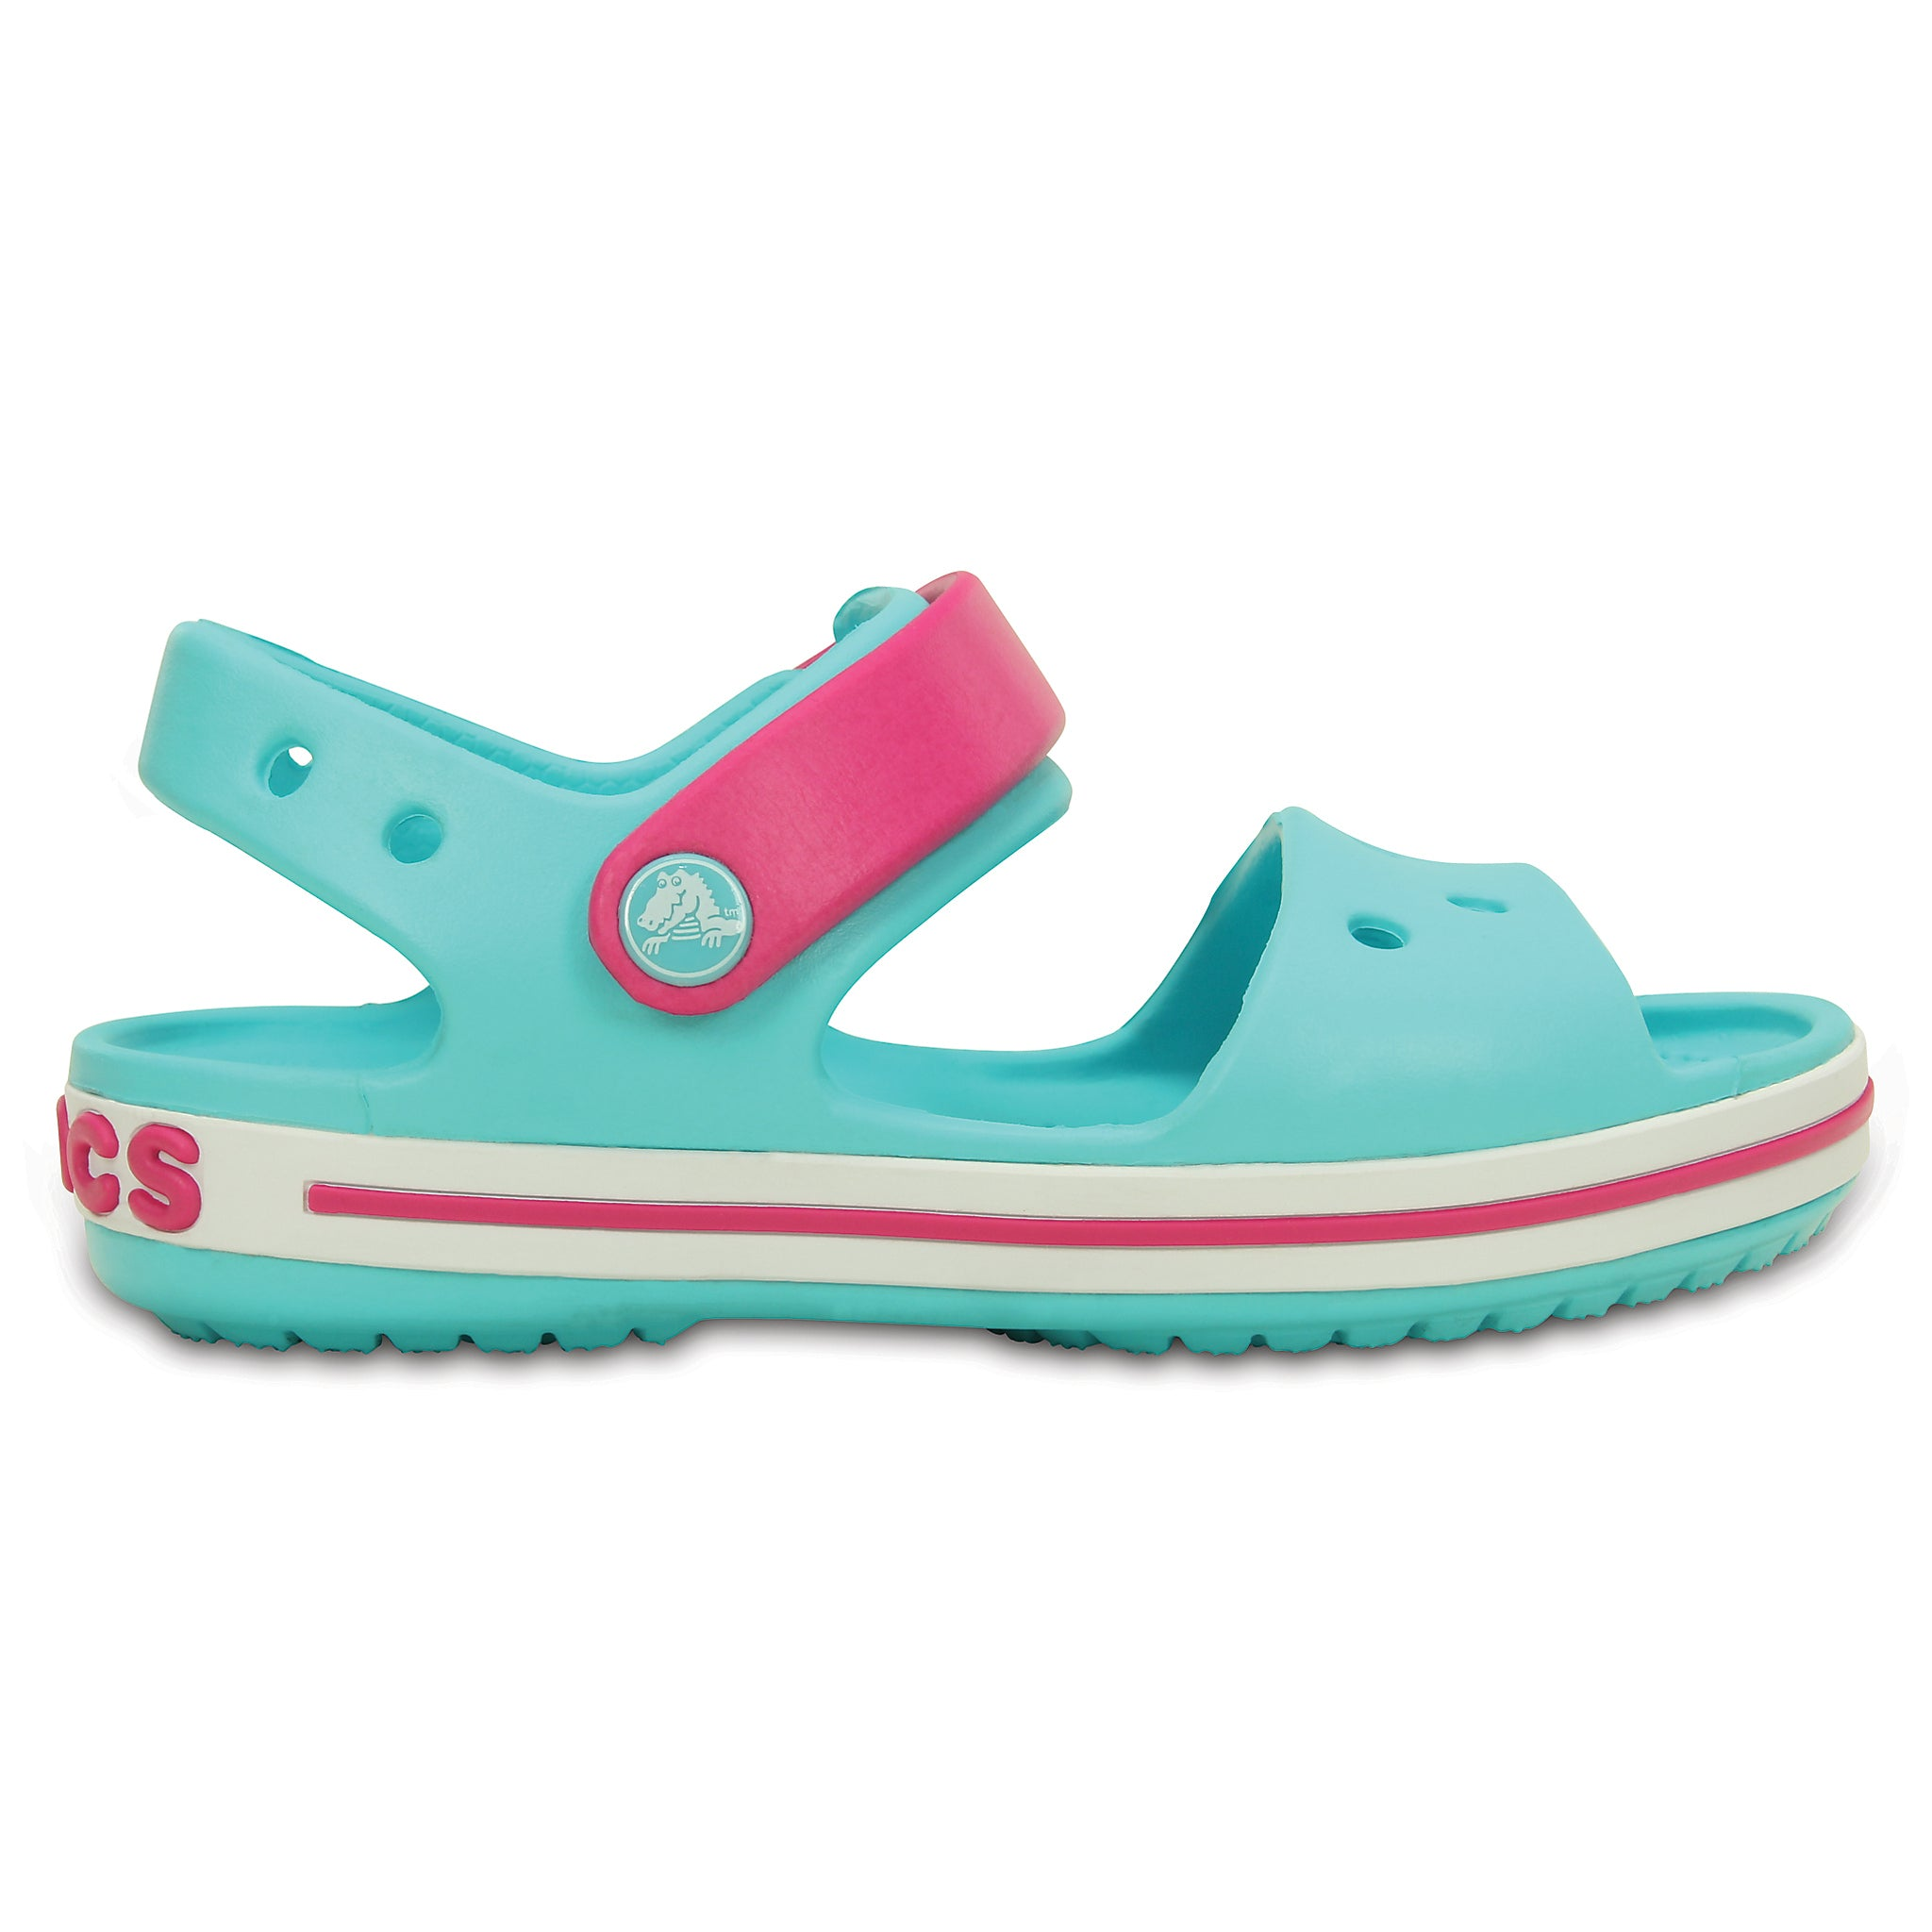 SALE - Crocs KIDS Crocband Sandal - Pool / Candy Pink - 12856-4FV